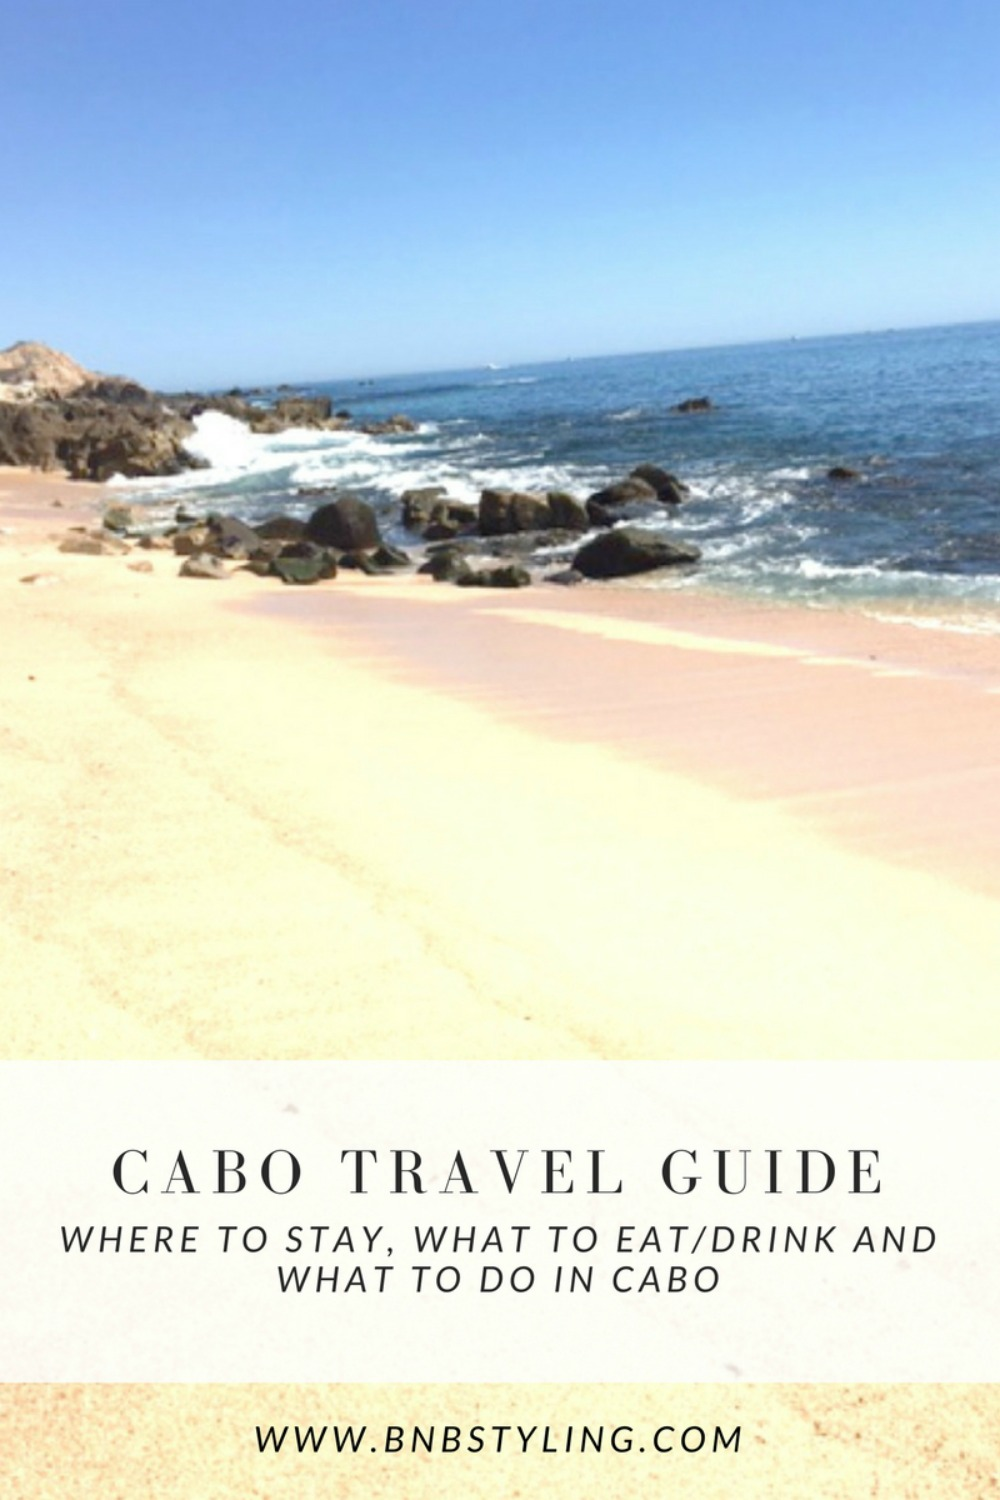 Cabo Travel Guide